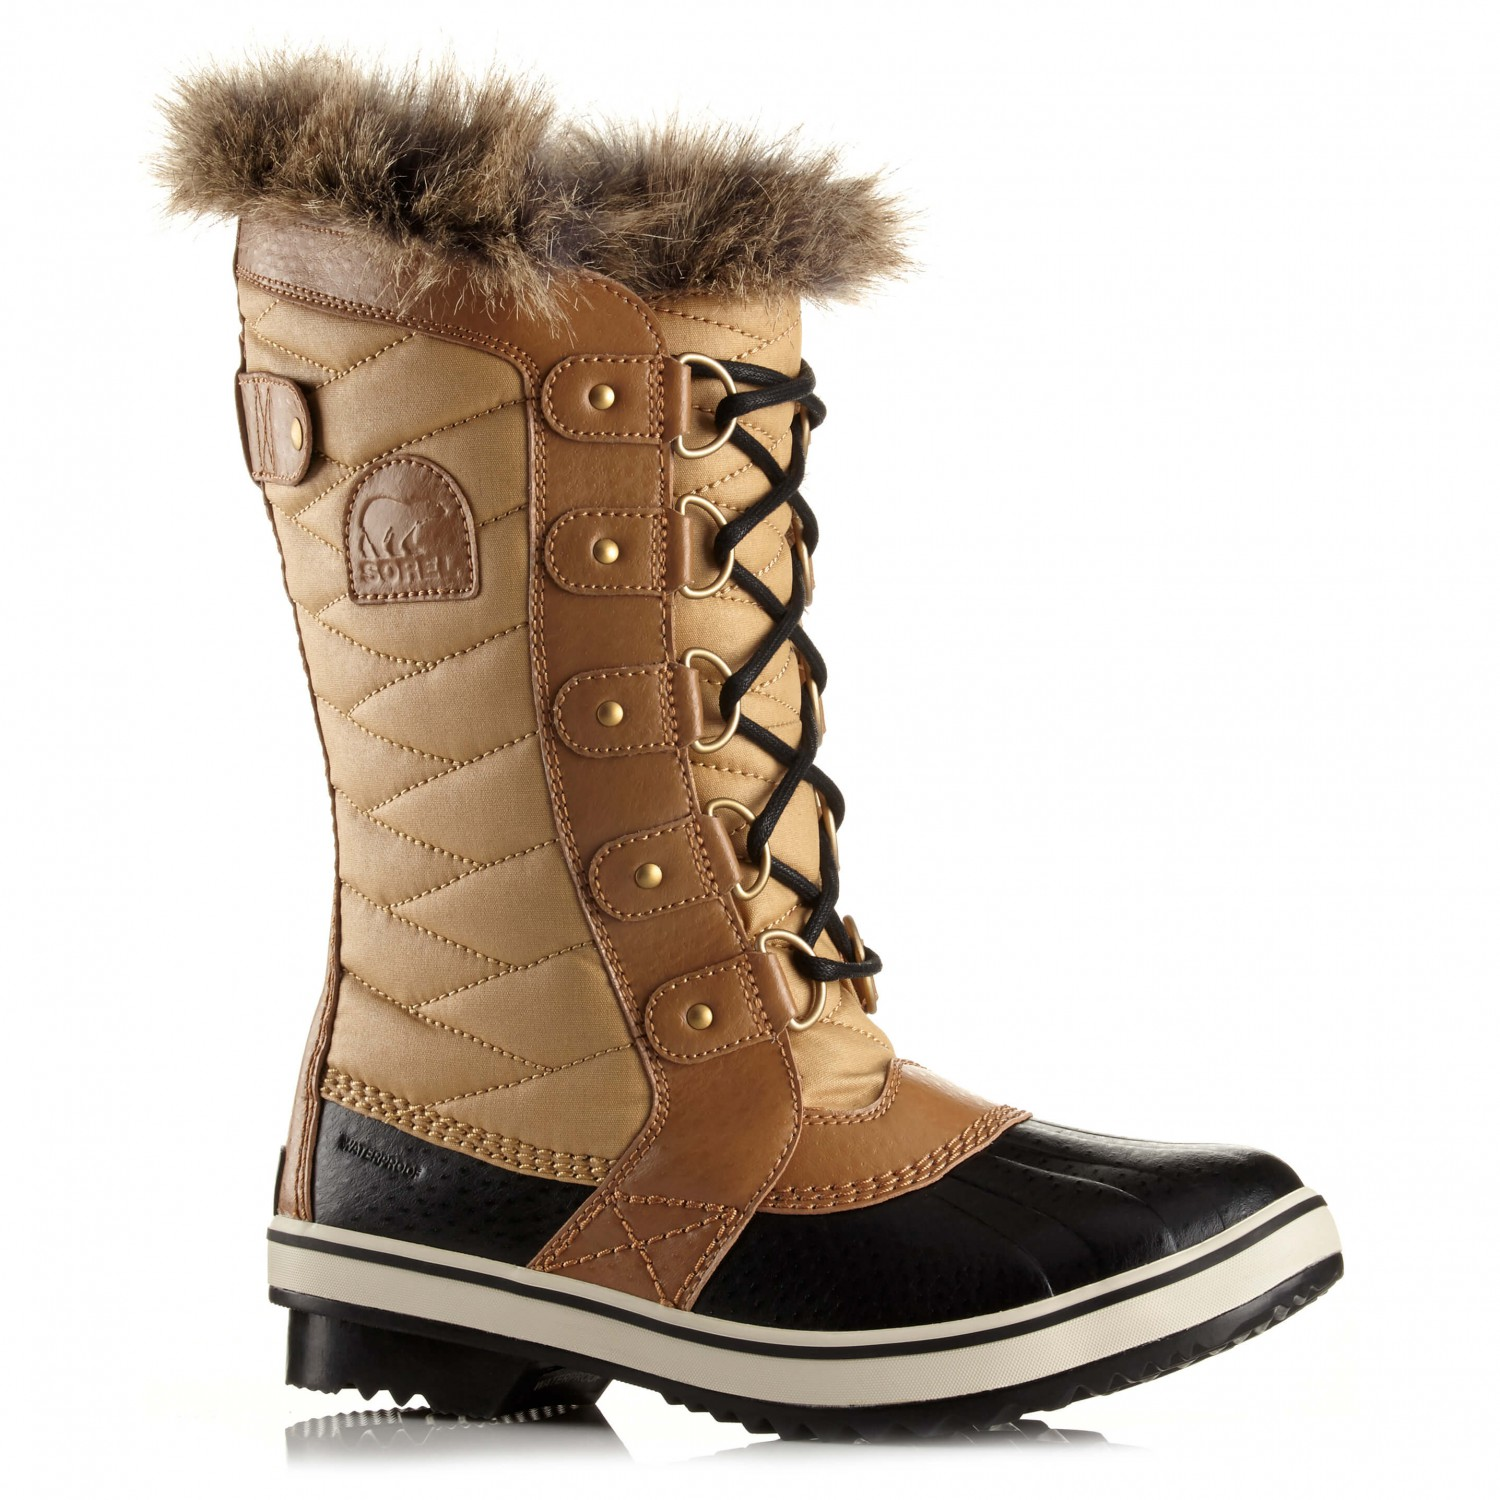 lowest price 54991 0fcf9 Sorel - Women's Tofino™ II - Winterschuhe - Black / Stone | 6 (US)